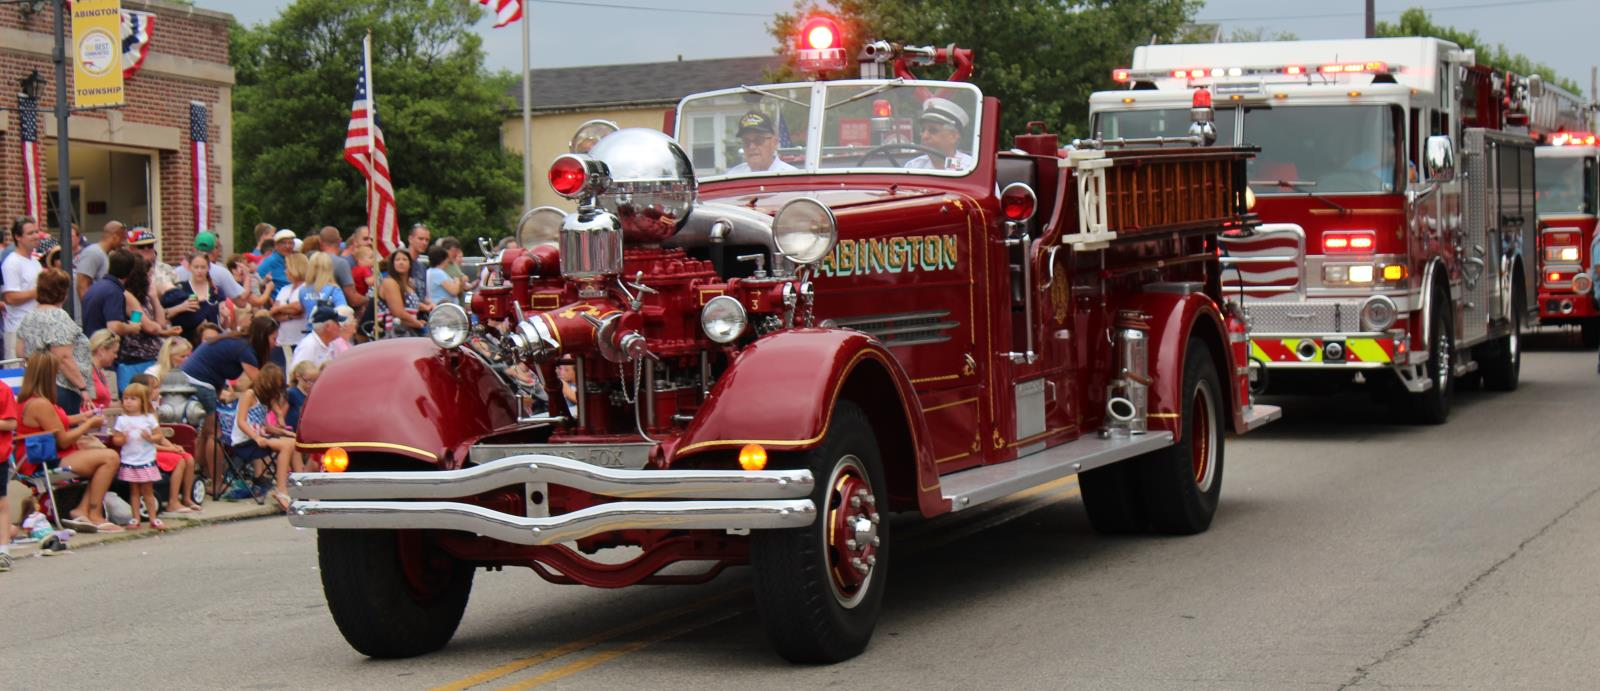 2016 Parade antique fire truck